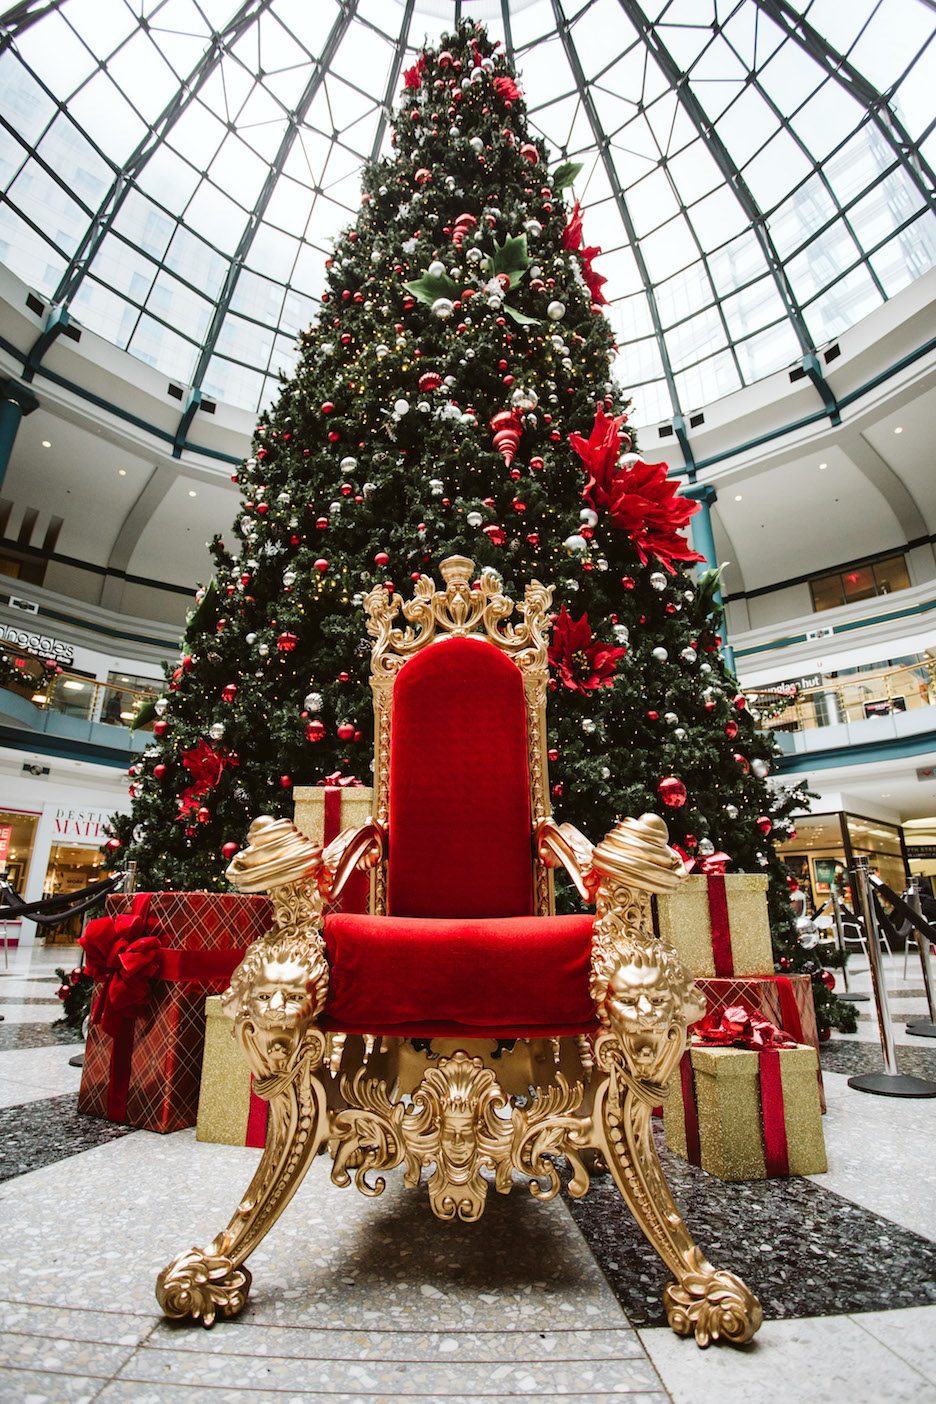 Shops at Liberty Santa Throne PC Lexy Peirce